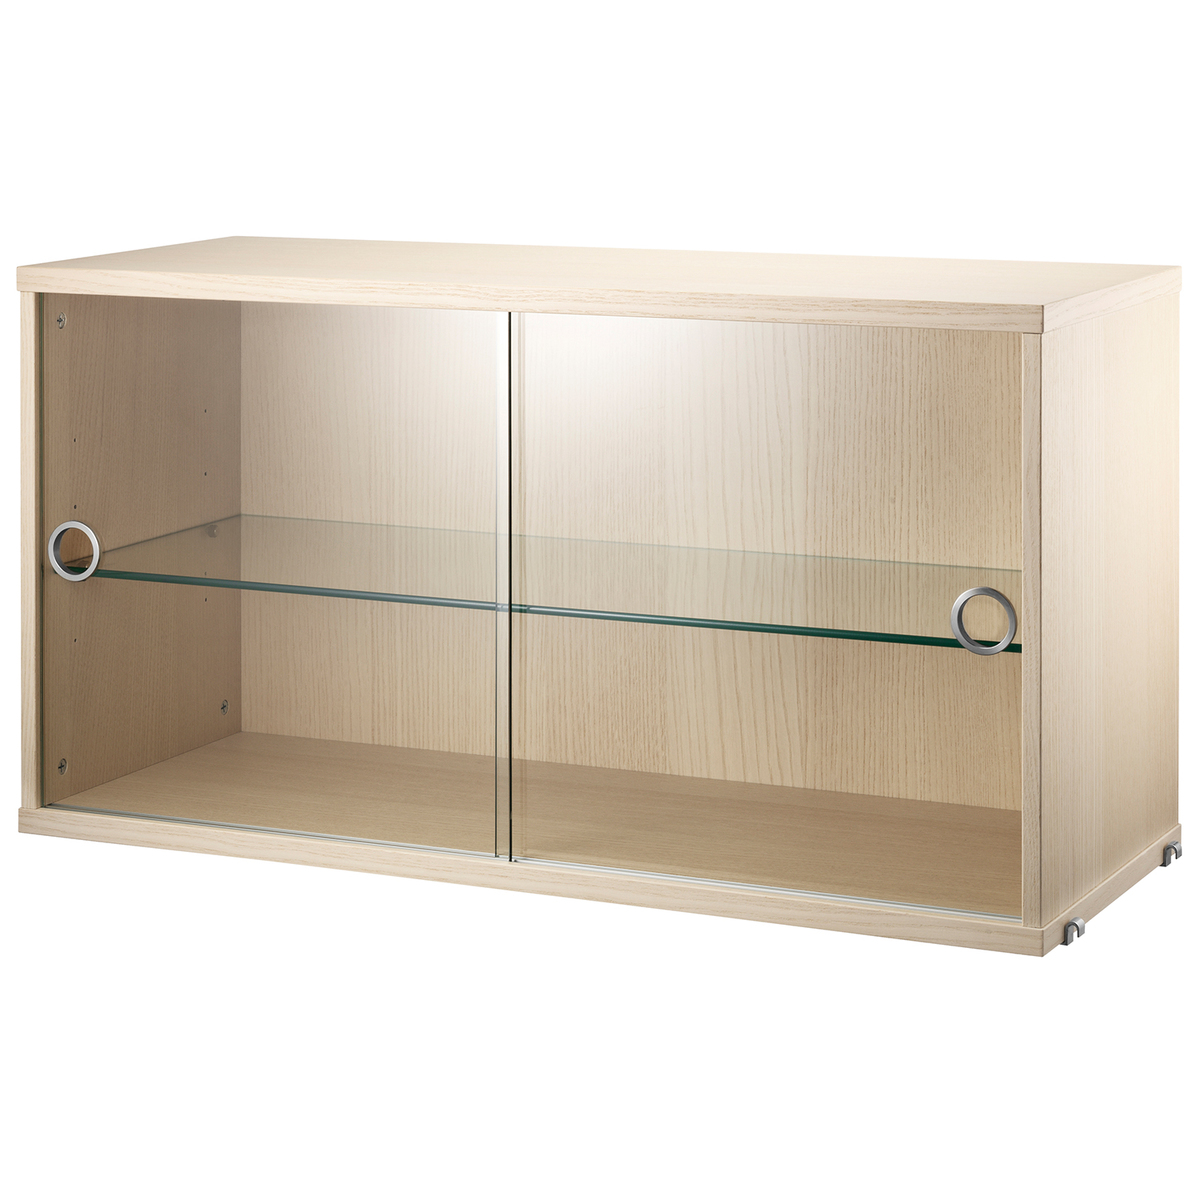 String Furniture String display cabinet, ash from String Furniture